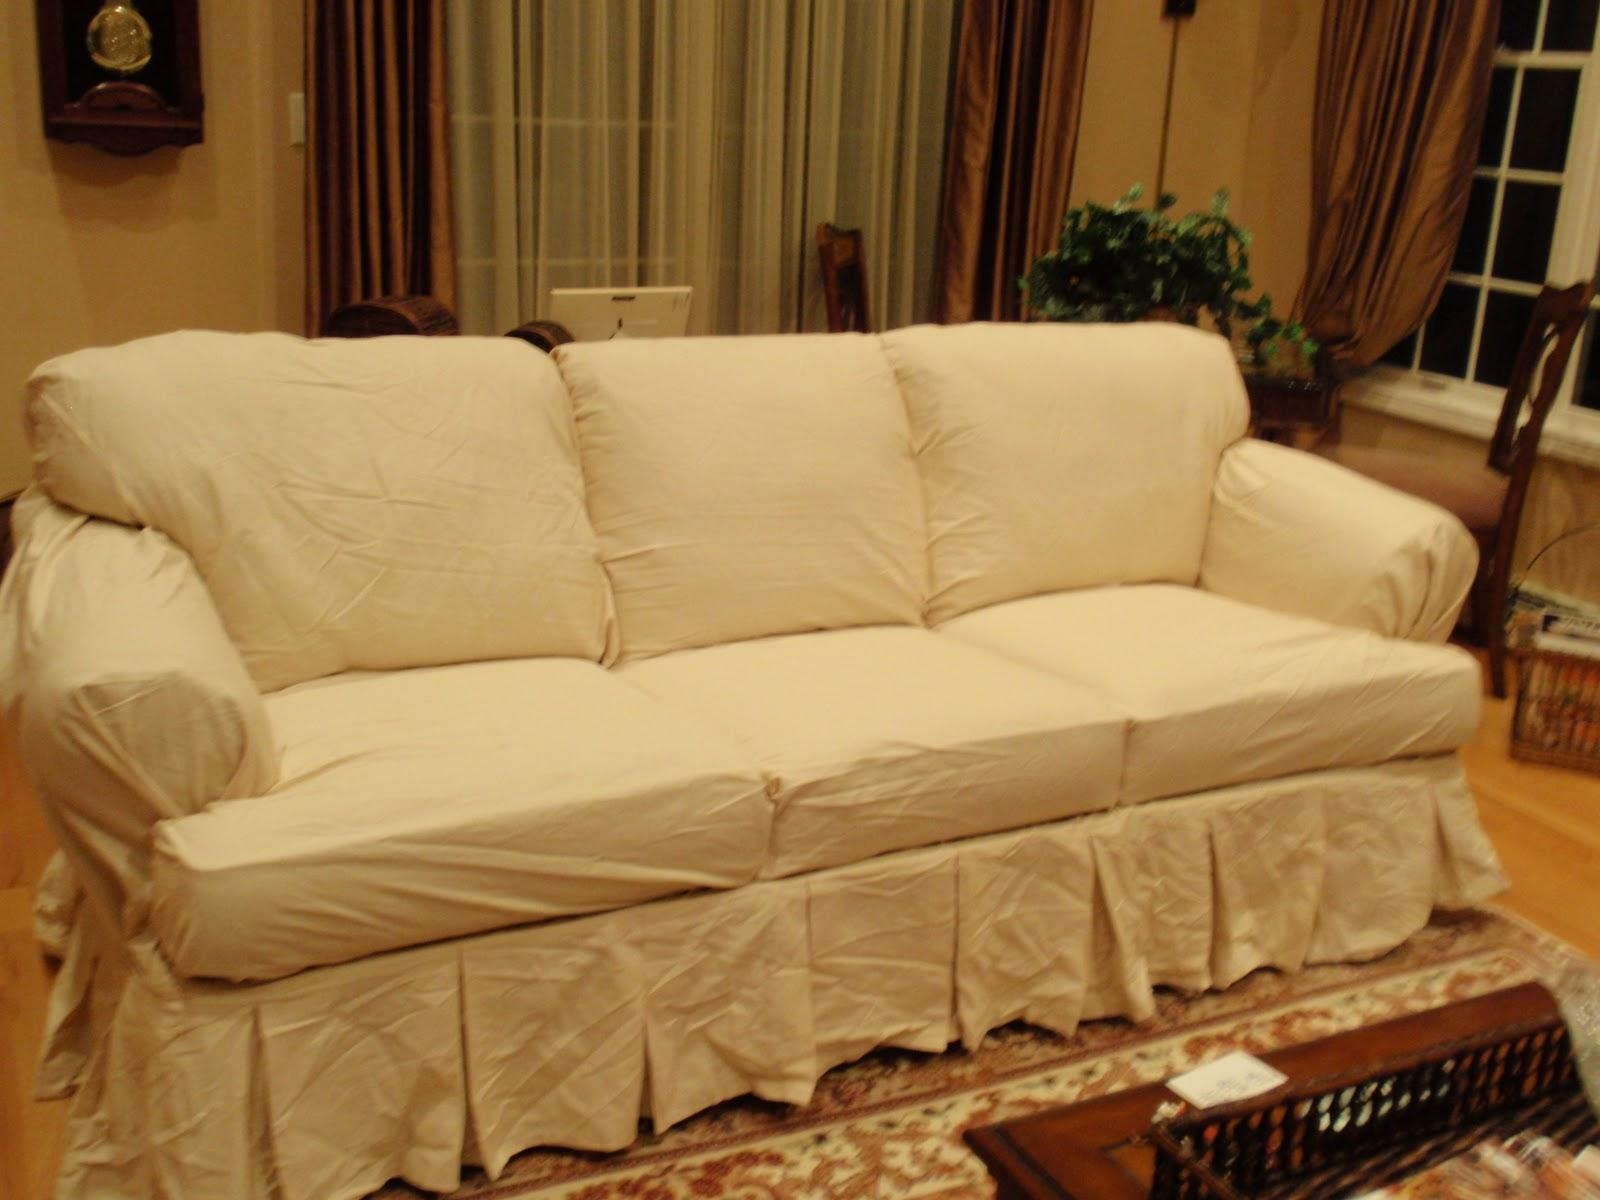 Furniture: Update Your Living Room With Best Sofa Slipcover Design With Regard To Slipcovers For Sleeper Sofas (View 16 of 20)